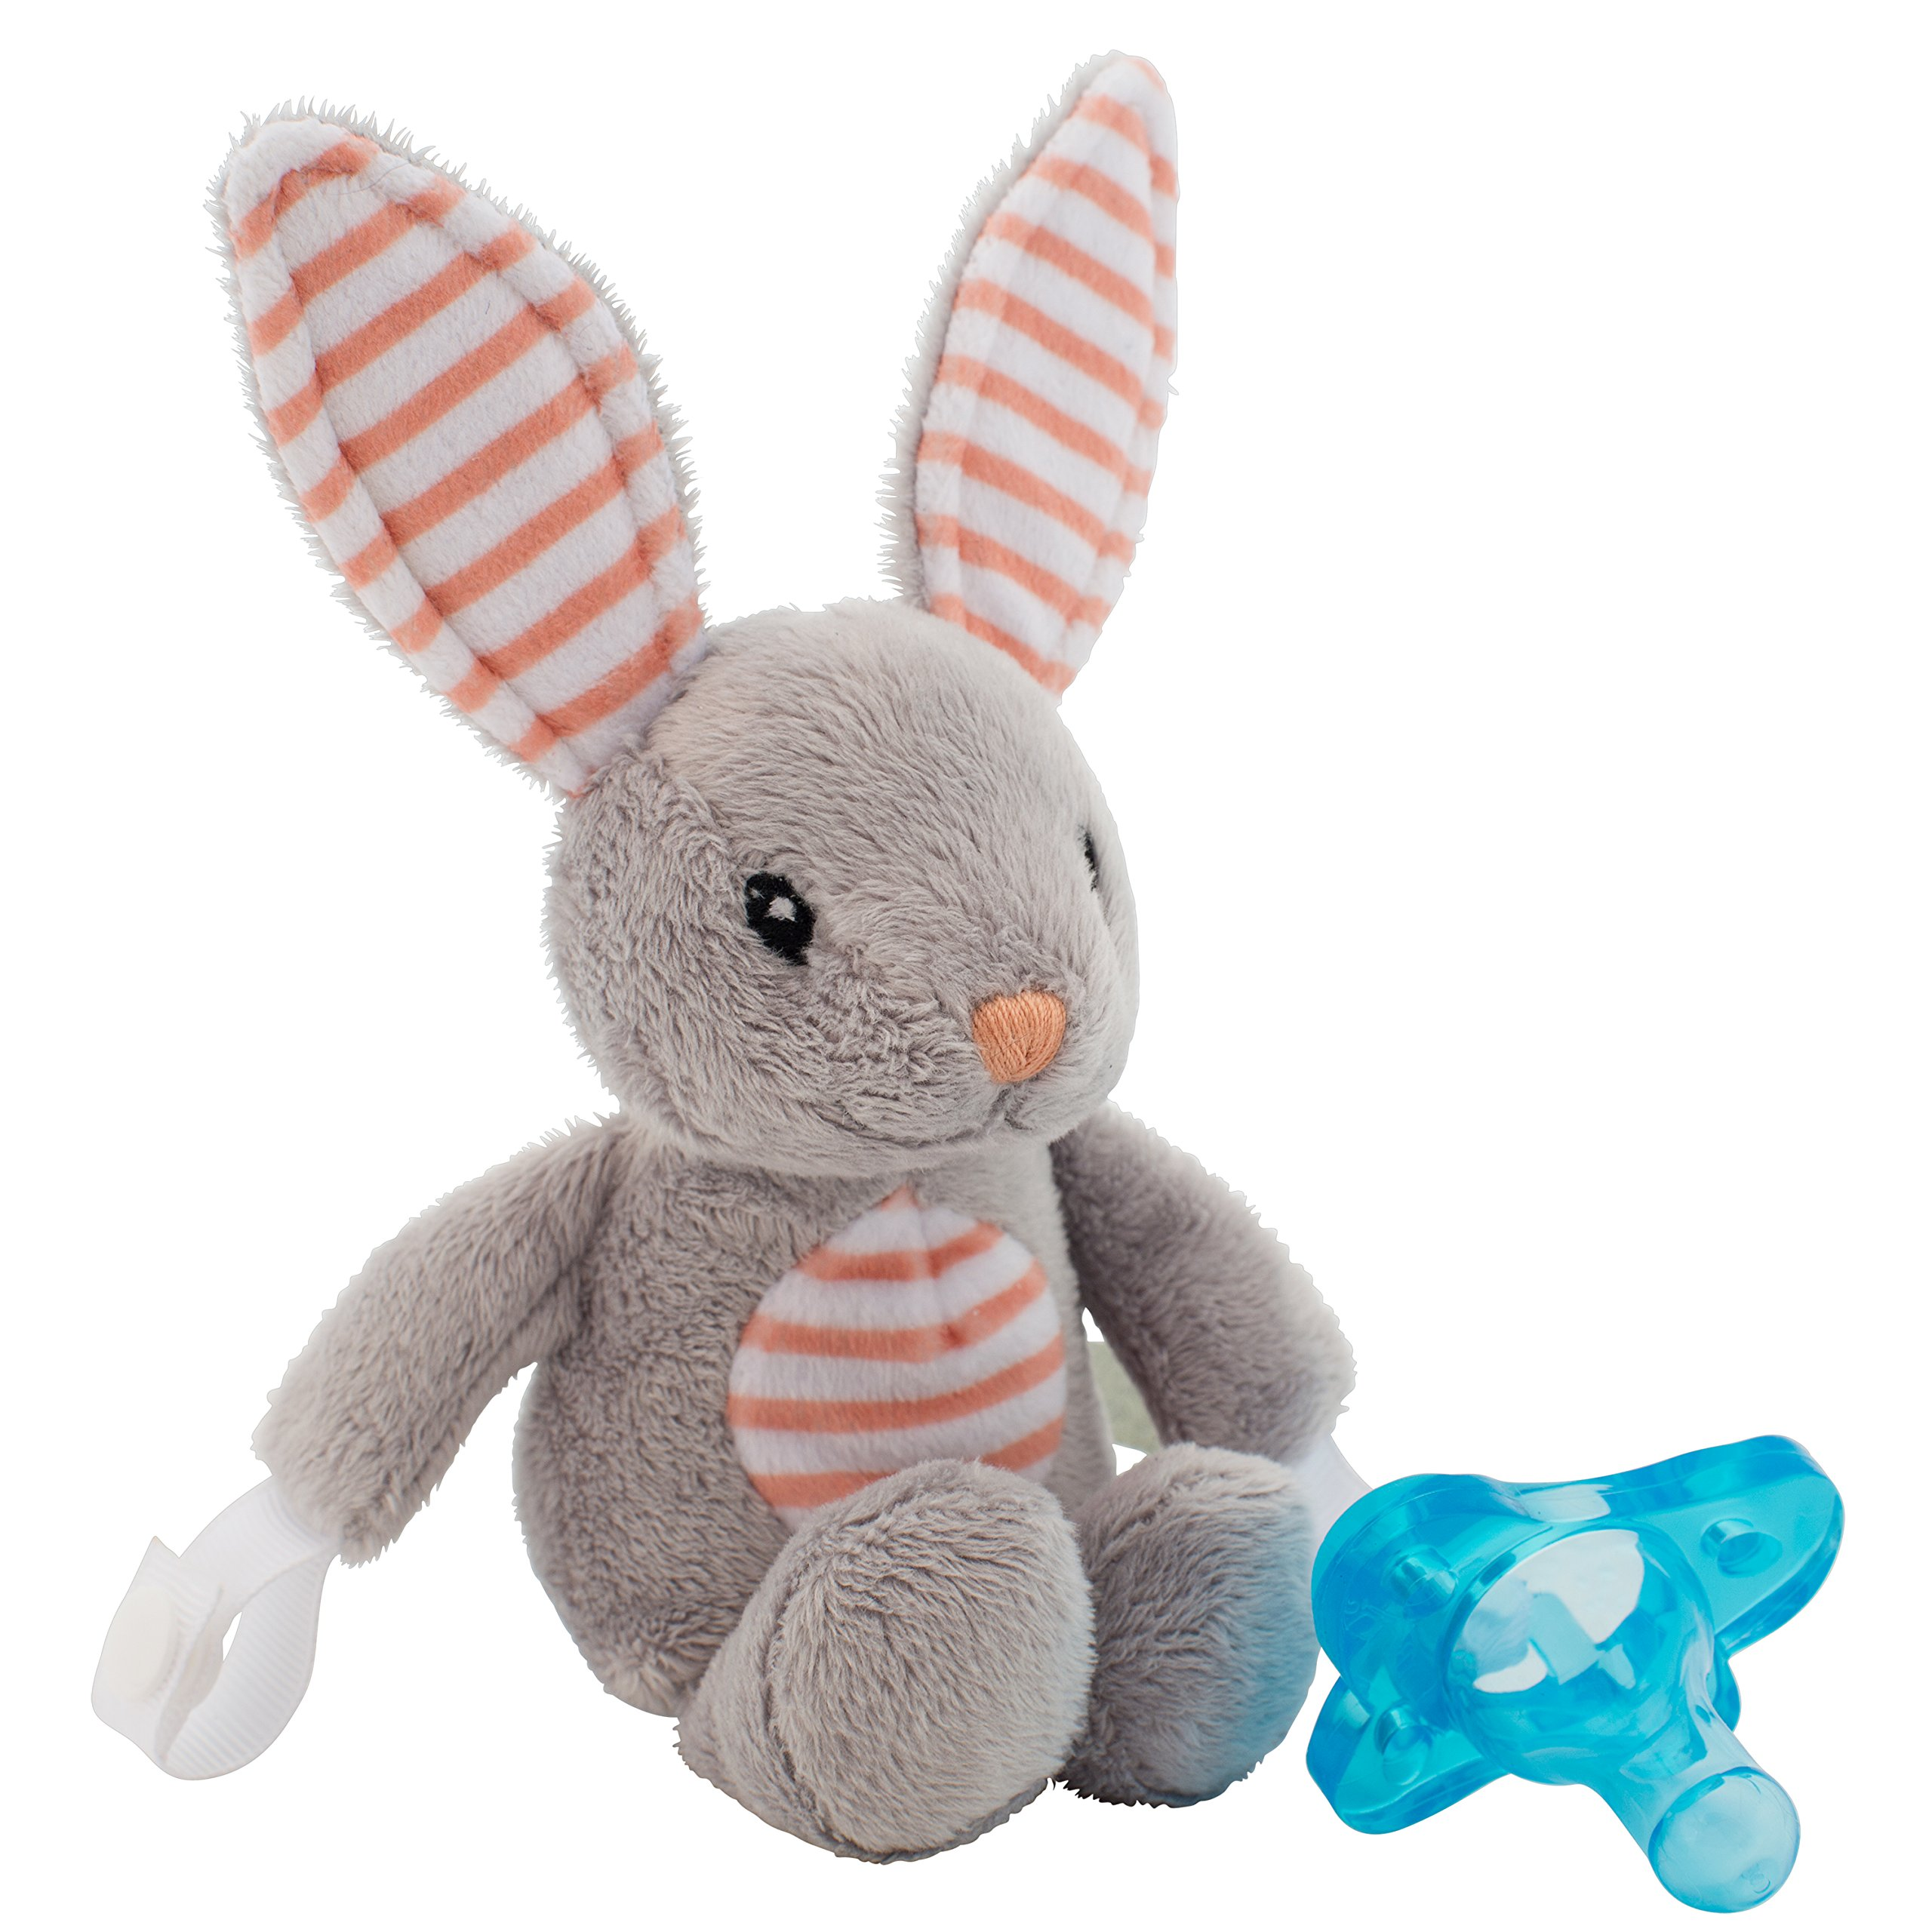 Dr. Browns Lovey Pacifier and Teether Holder, 0 Months Plus, Bunny with Blue